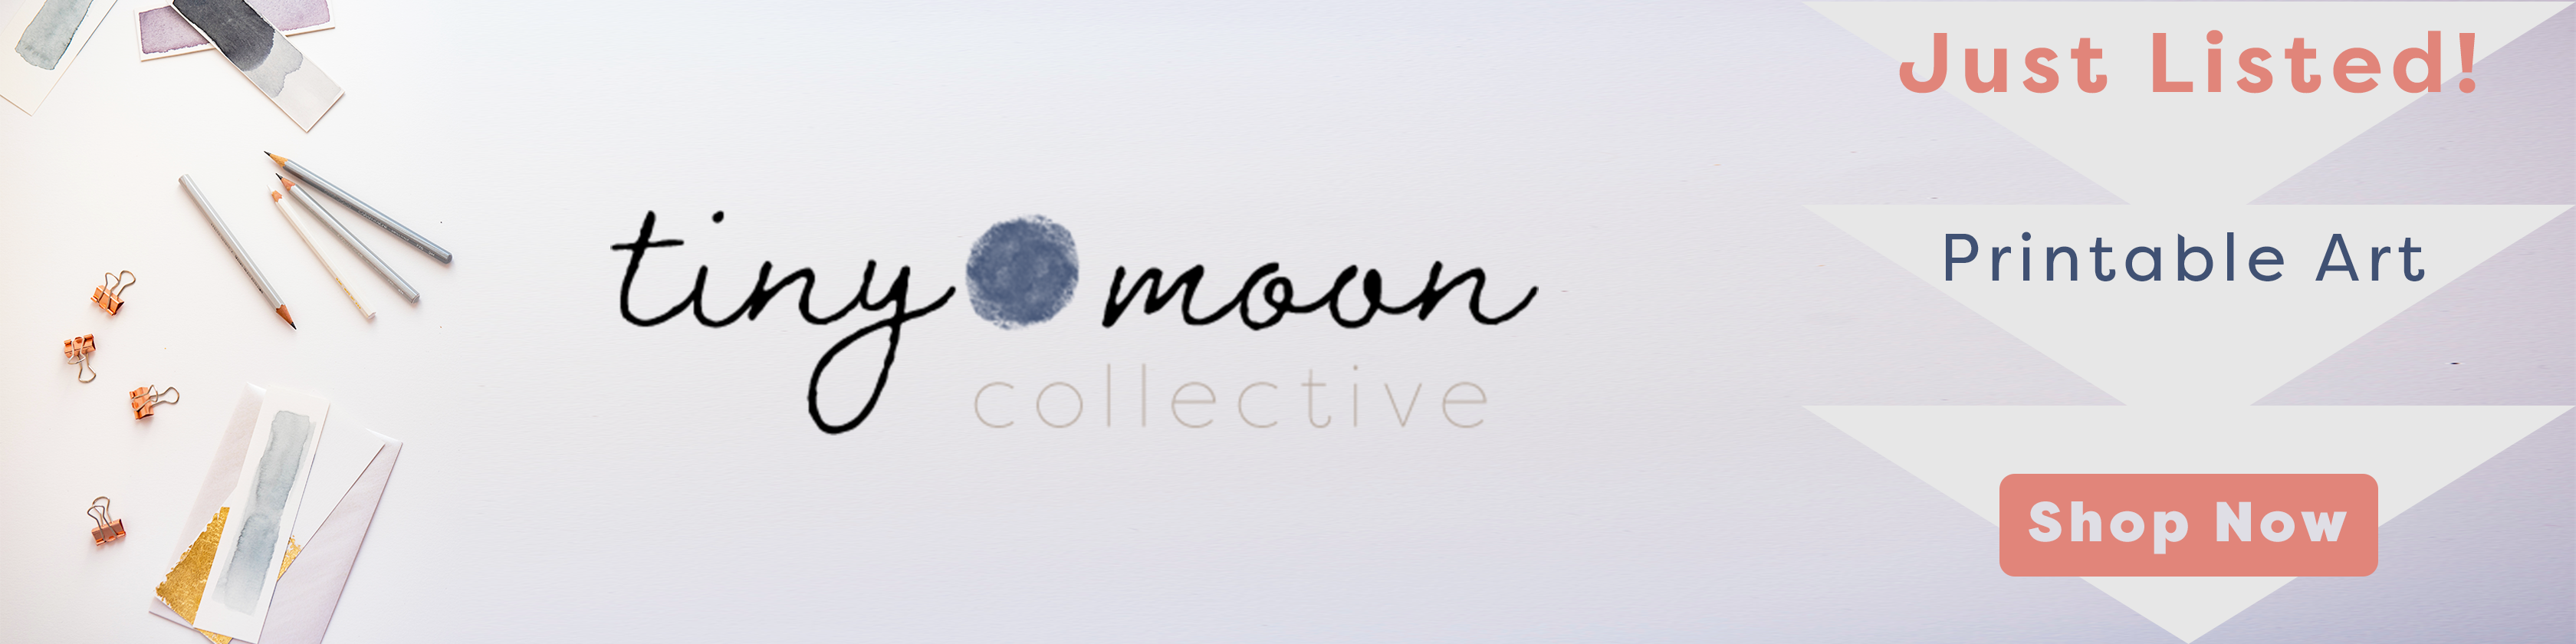 Tiny-Moon-Collective-just-listed